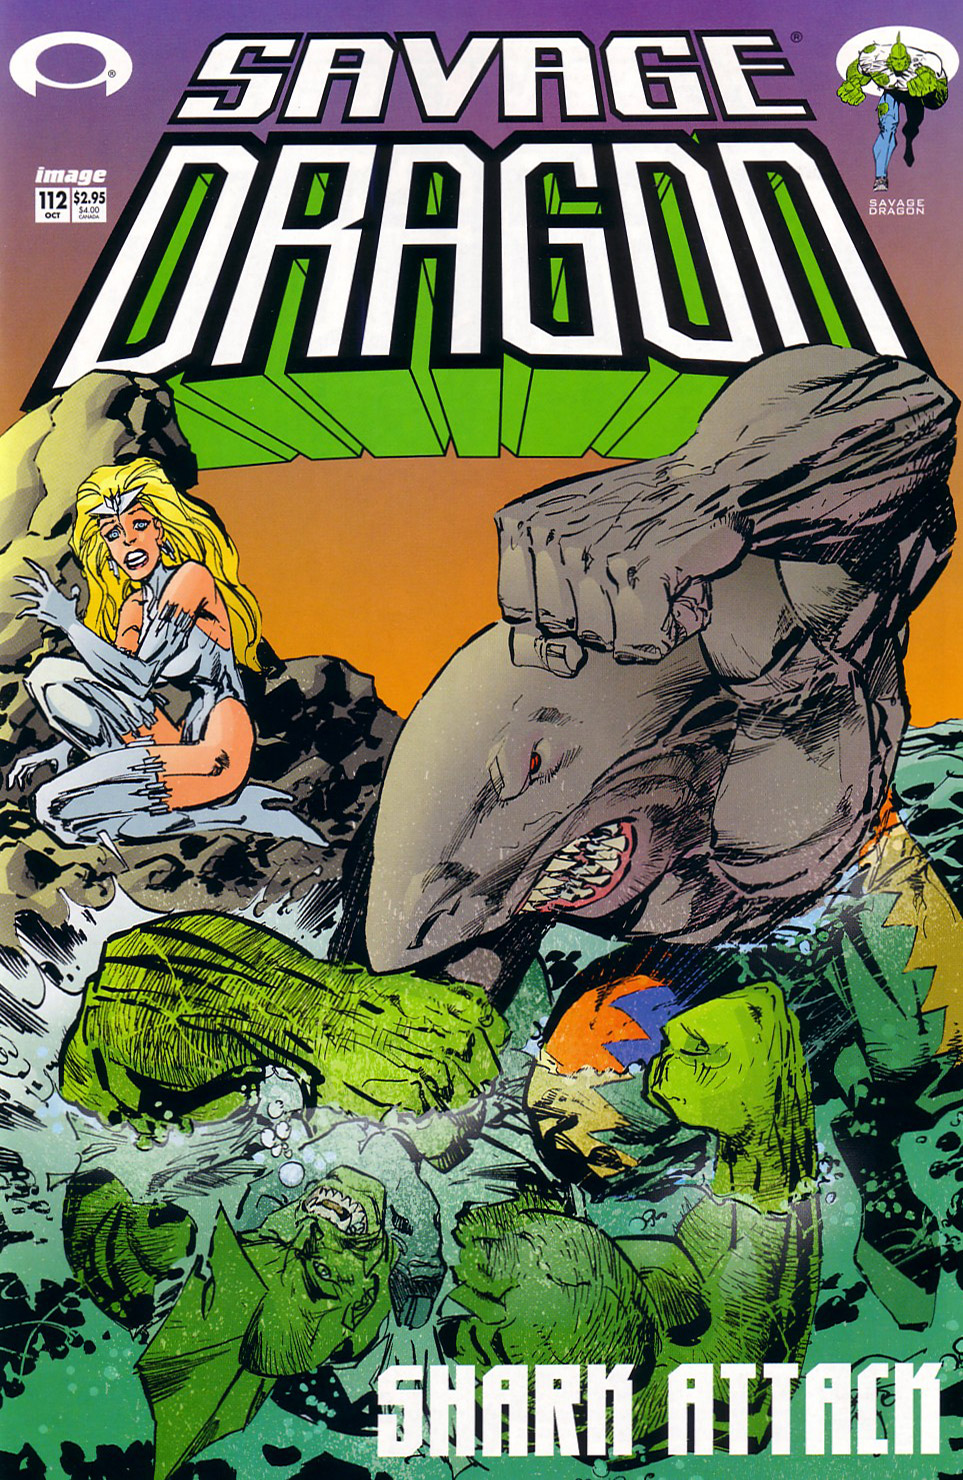 Cover Savage Dragon Vol.2 #112